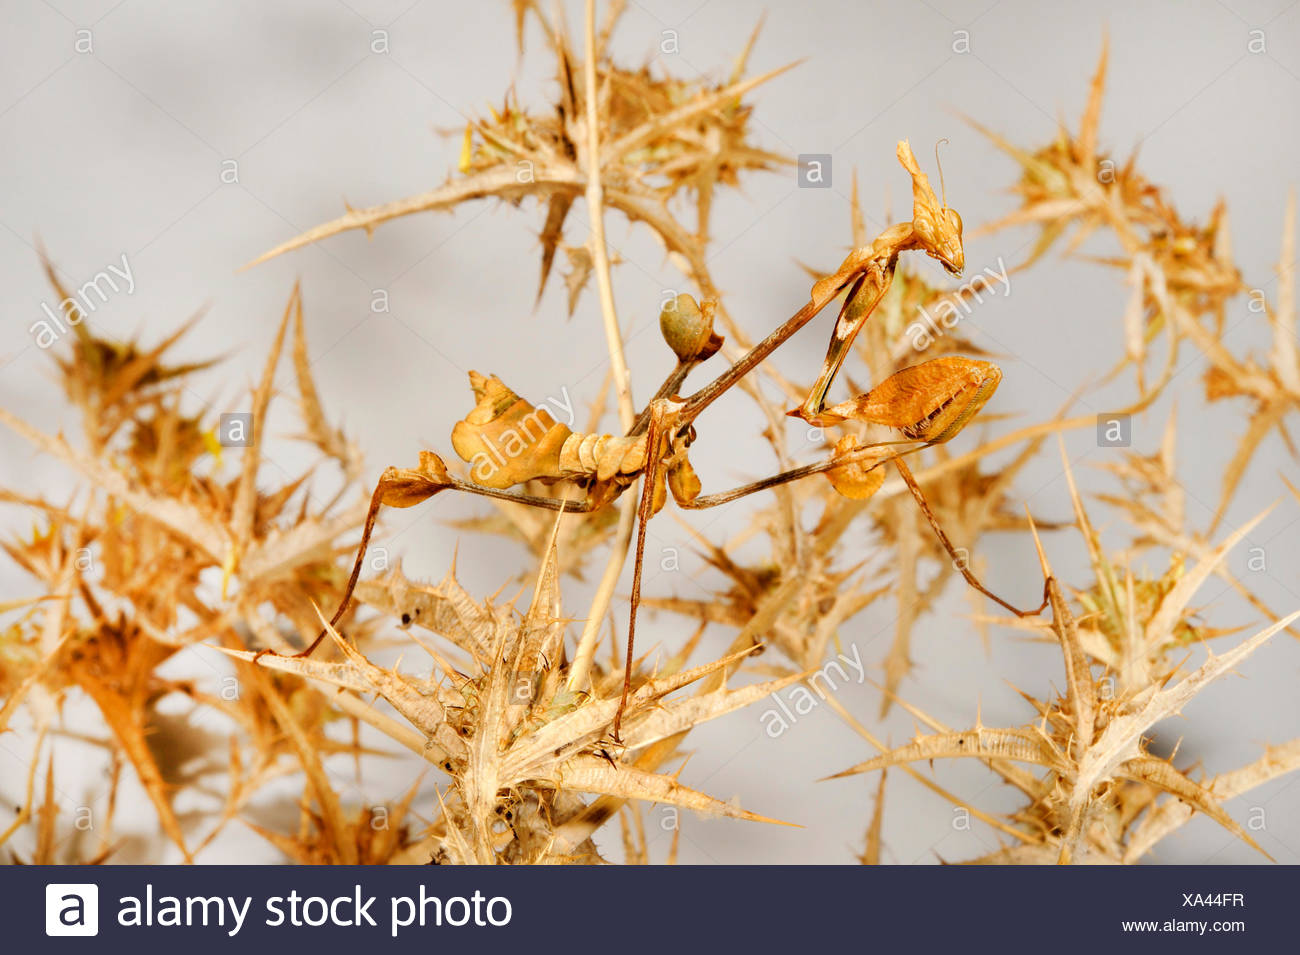 Wandering violin mantis, Indian rose mantis (Gongylus gongylodes), well camouflaged on withered plant - Stock Image